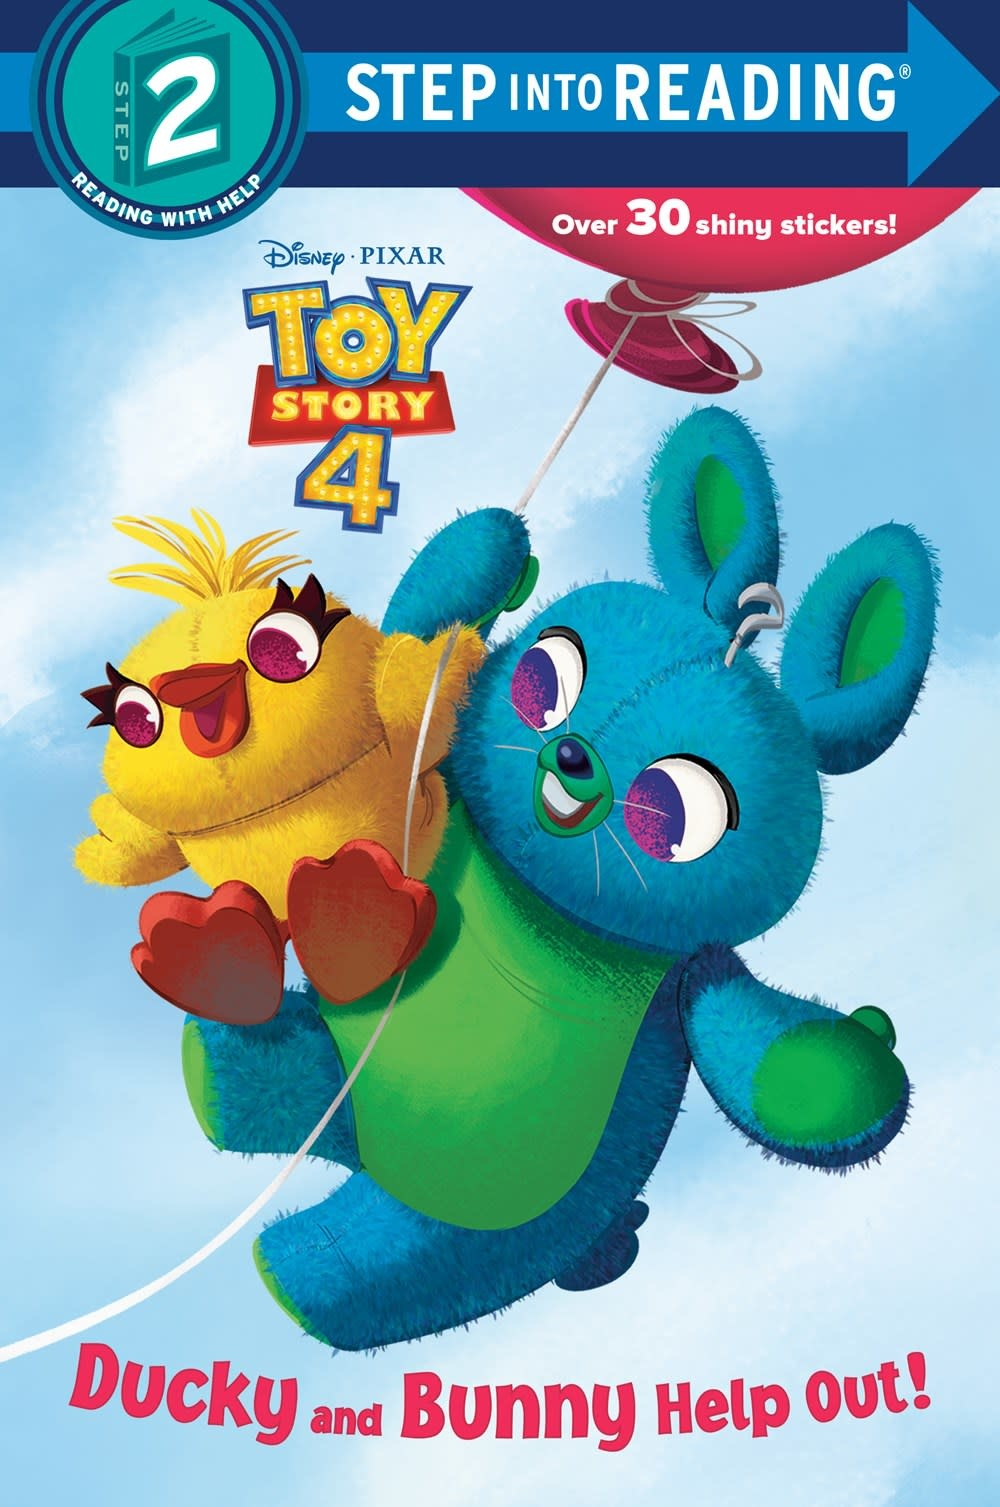 RH/Disney Disney/Pixar Toy Story 4: Ducky and Bunny Help Out! (Step-into-Reading, lvl 2)